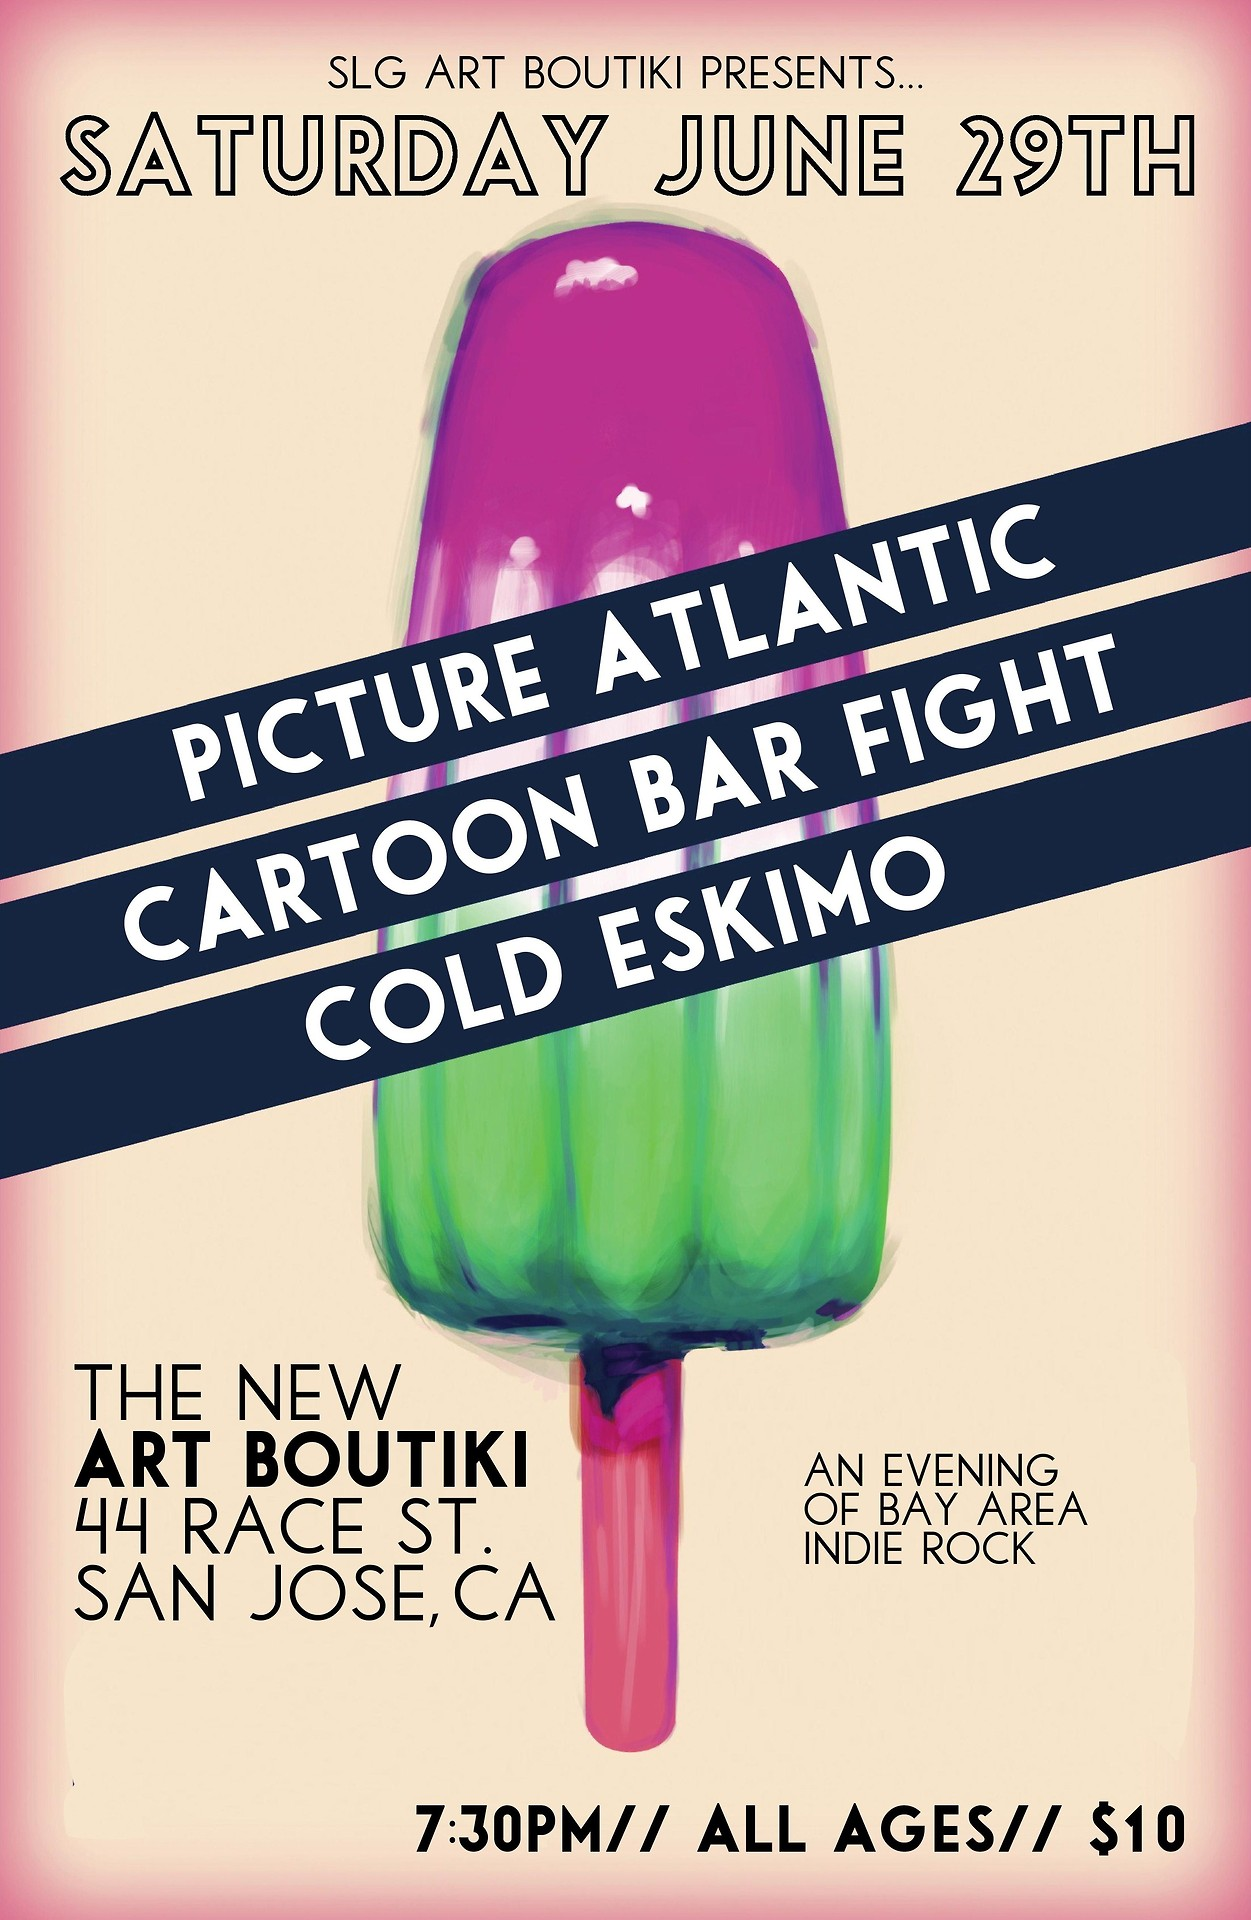 cartoonbarfight: This month, our favorite San Jose venue reopens! Happy to say we'll be playing their first show at the new location, alongside Picture Atlantic and Cold Eskimo!